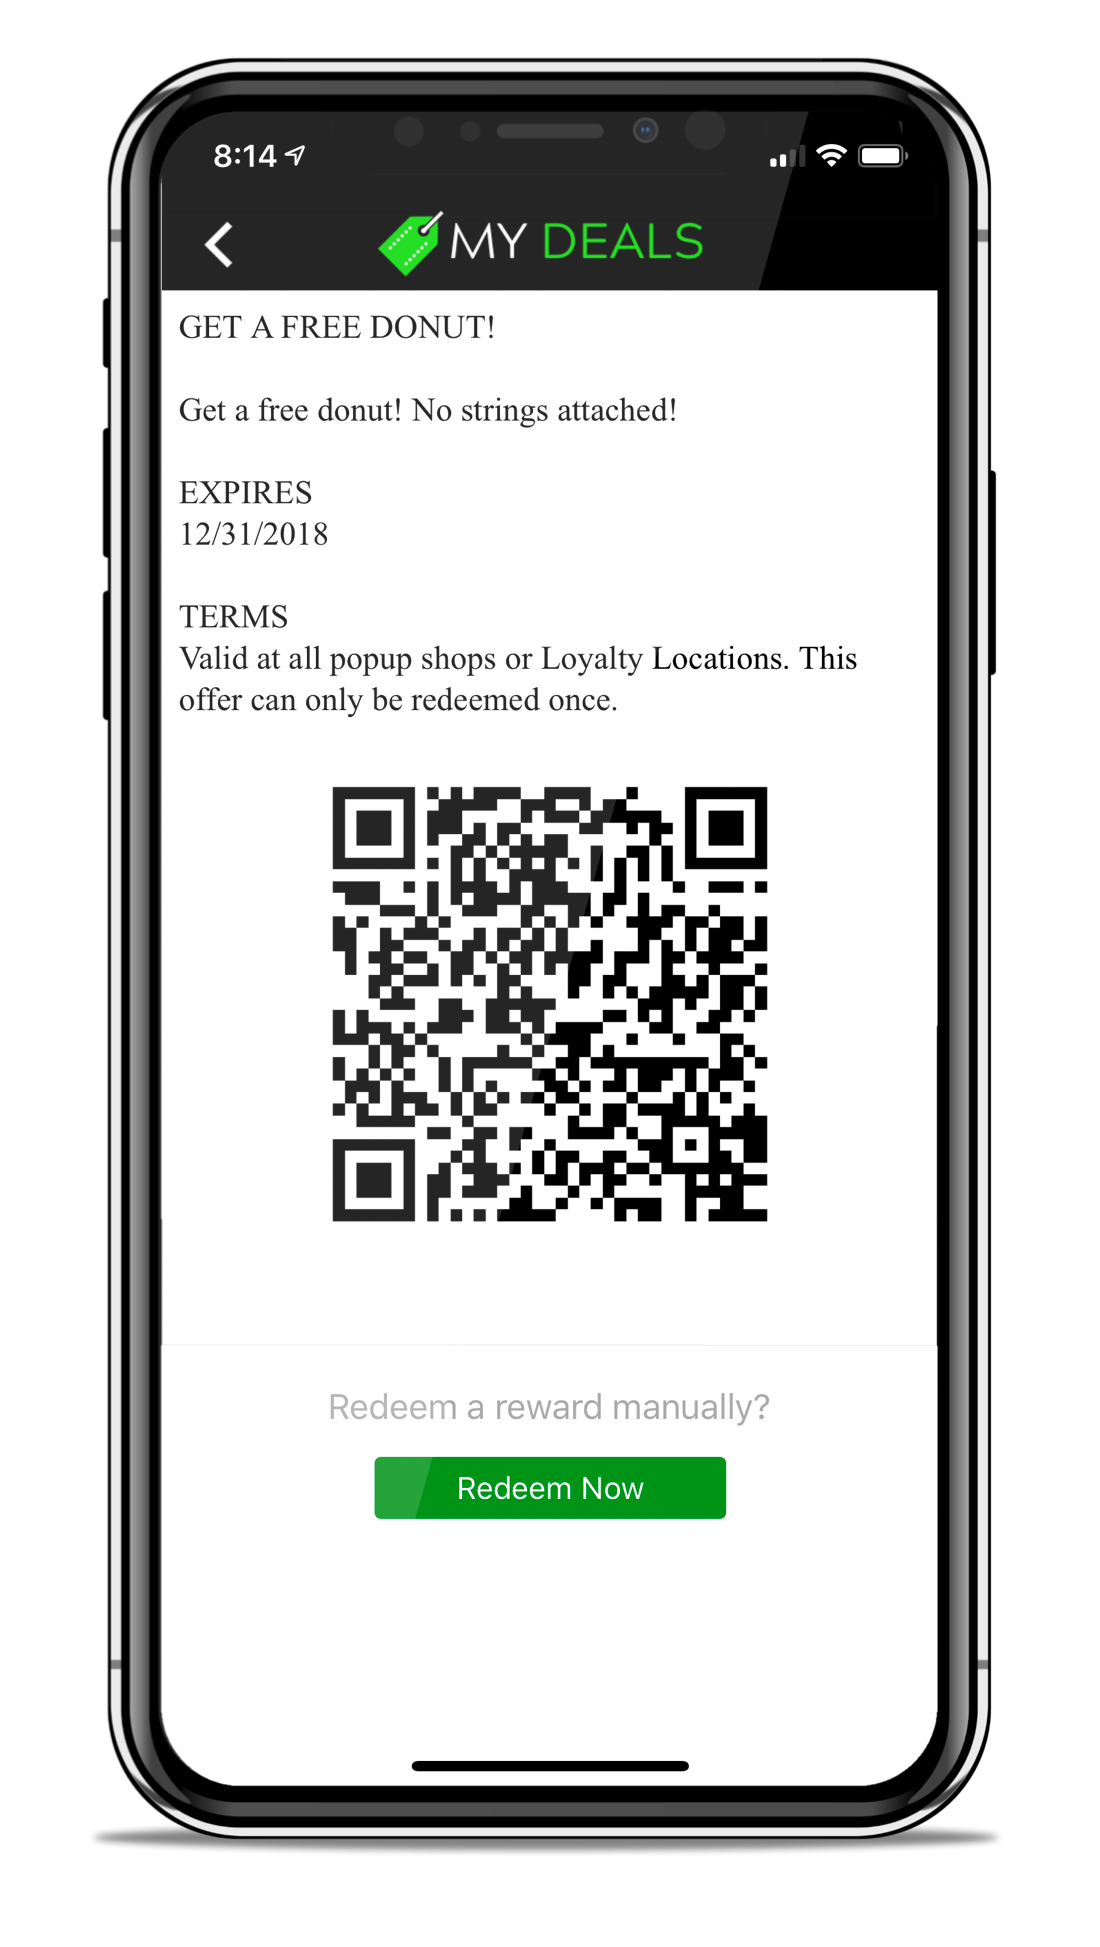 Rewards & Deals Can Be Redeemed in Square Terminal, In-App via Admin QR Scan or via Manual Redeem Button